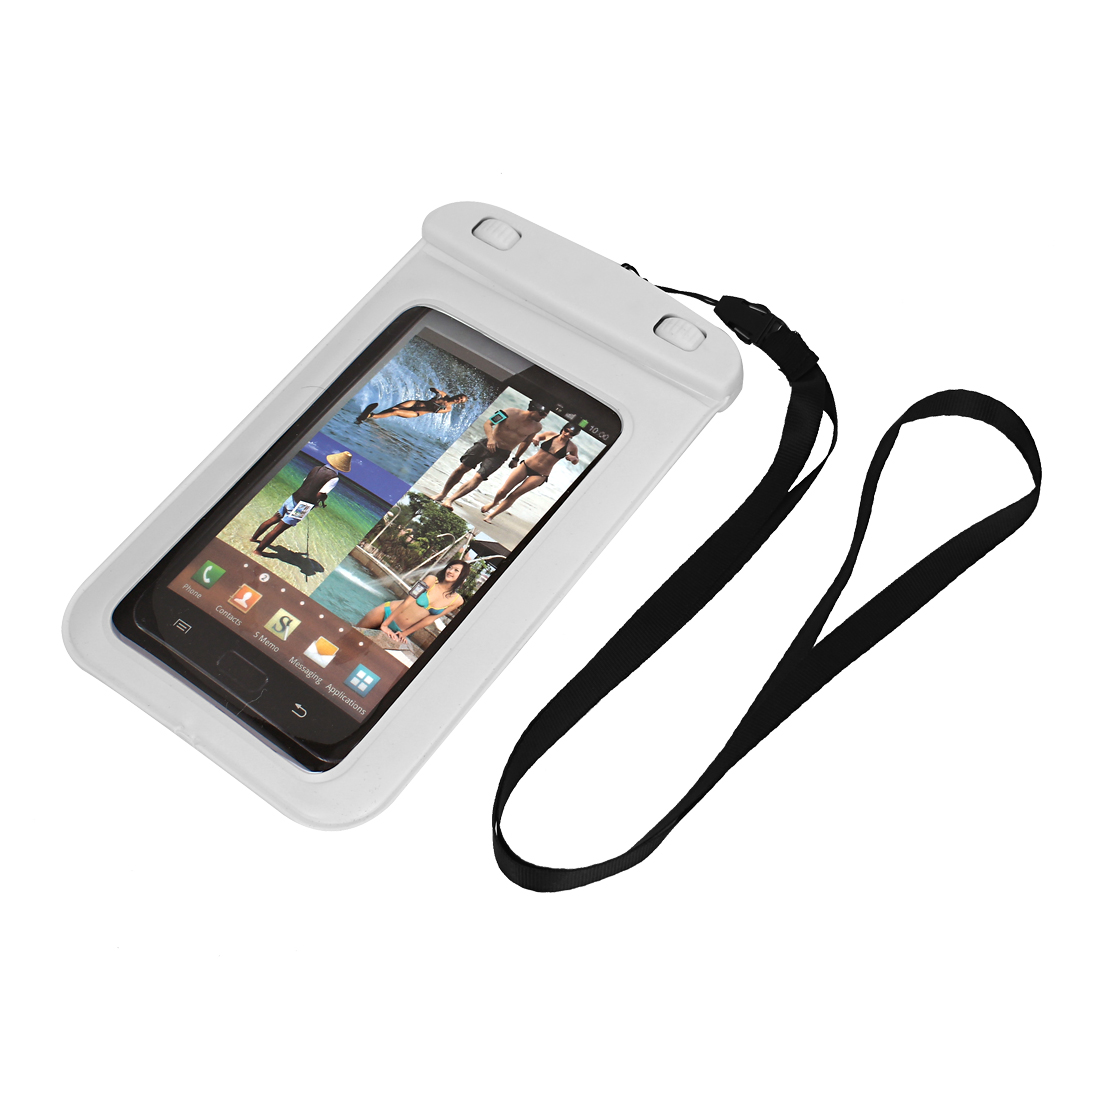 "Waterproof Bag Holder Pouch Case Cover White for 5.5"" Cell Phone w Neck Strap"